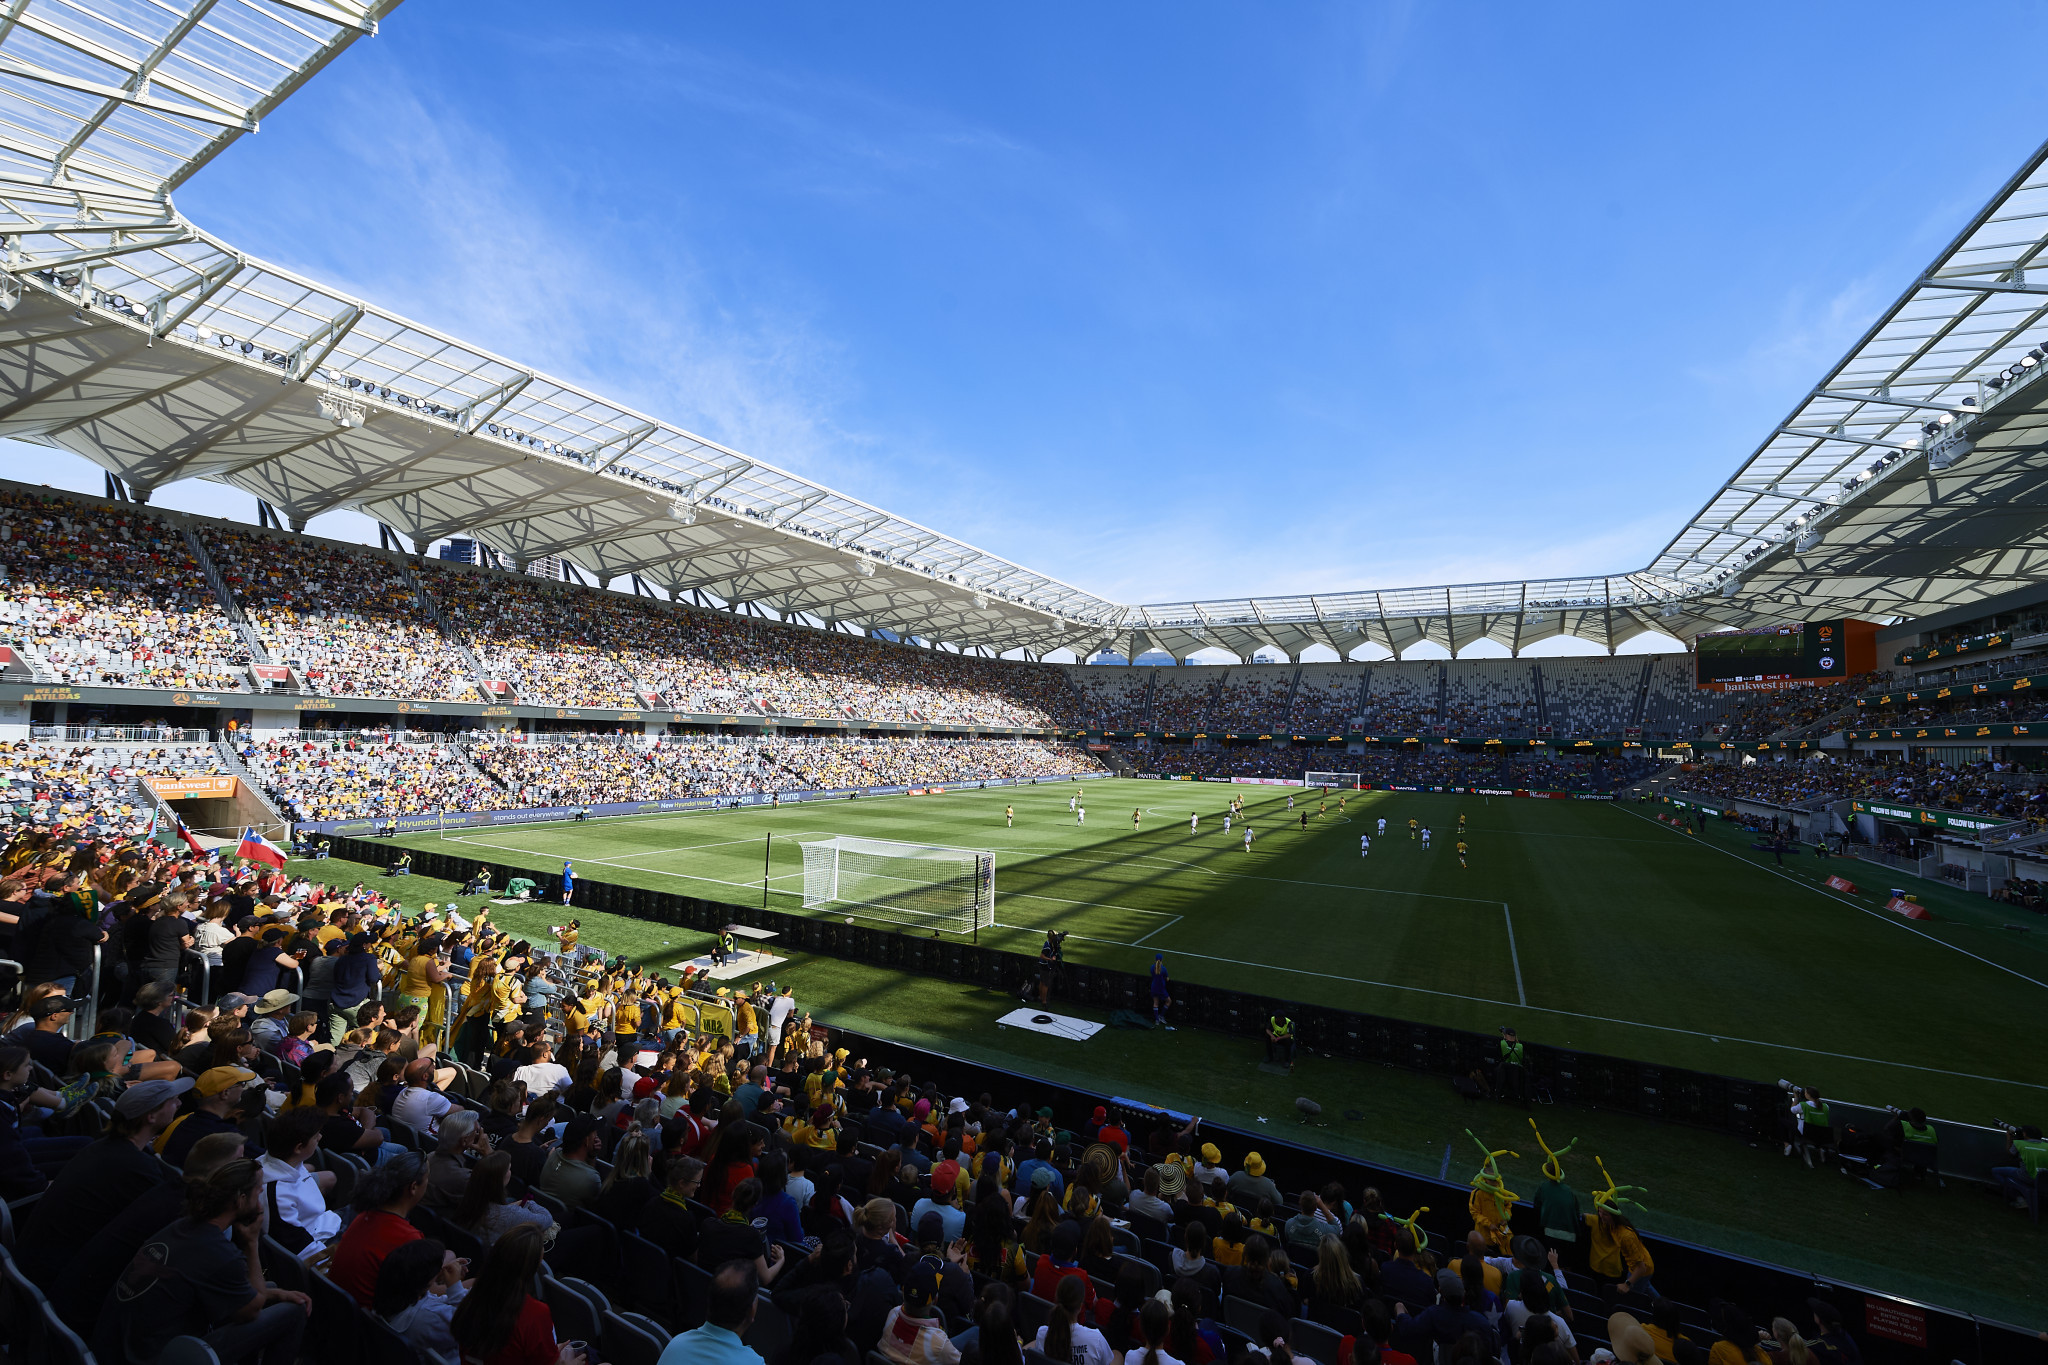 A record crowd watched Australia defeat Chile, in a week where the Matildas secured an equal pay deal ©Twitter